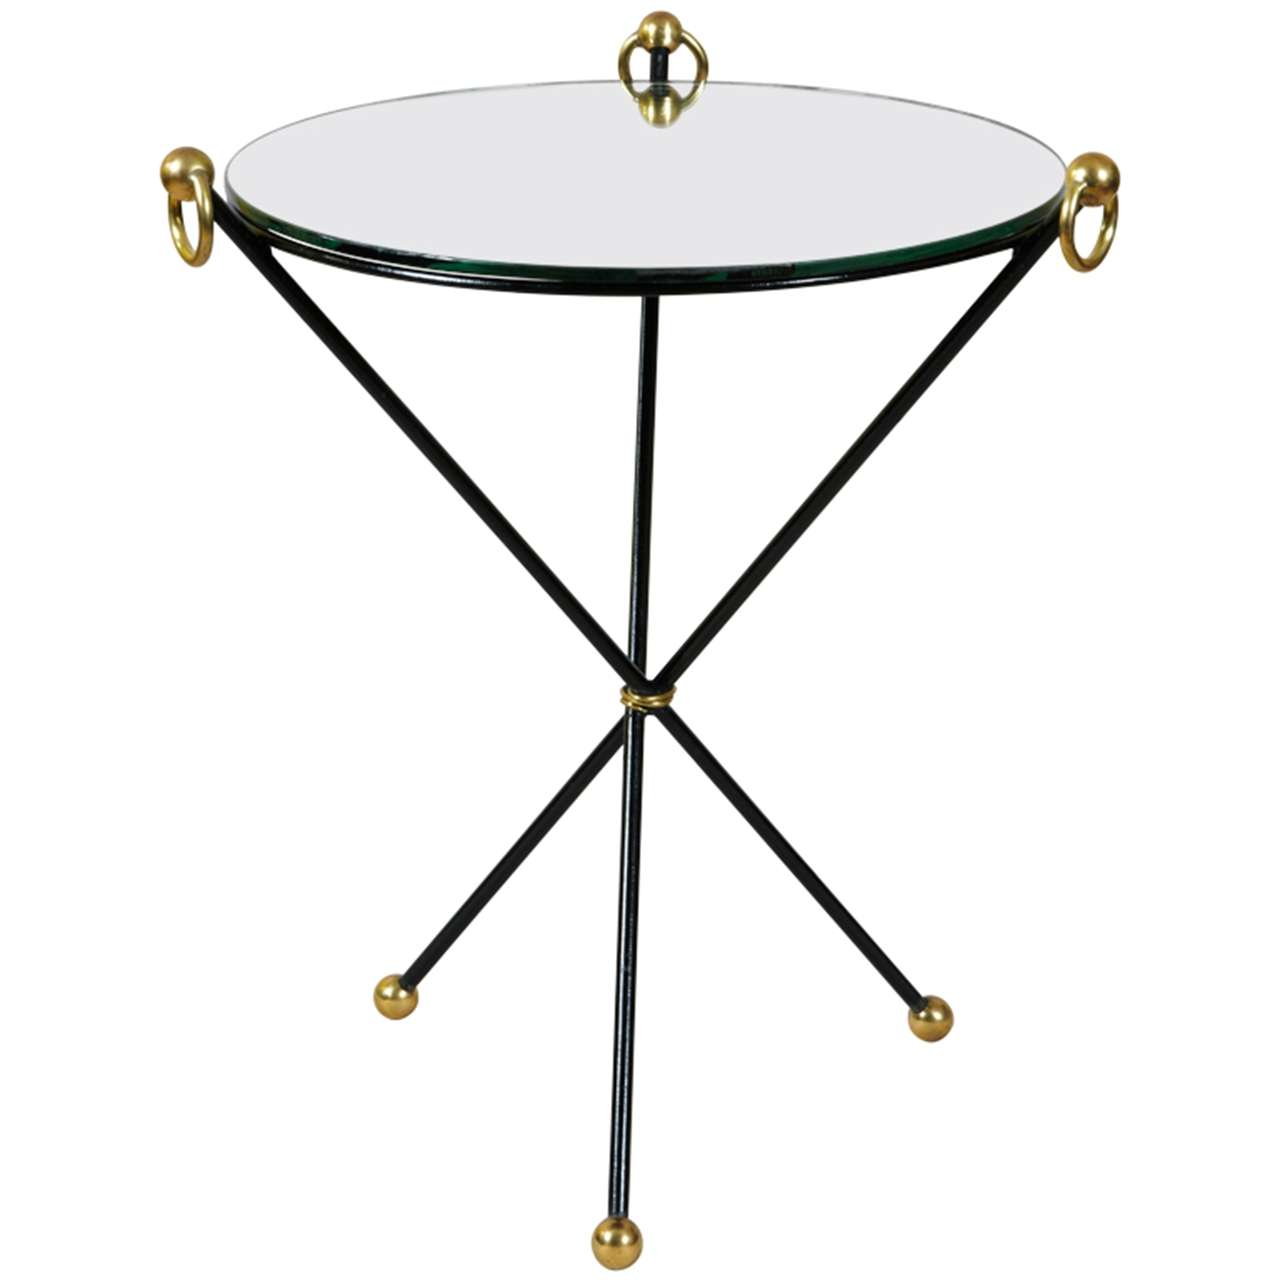 Table d 39 appoint 1940 at 1stdibs - Table d appoint transparente ...